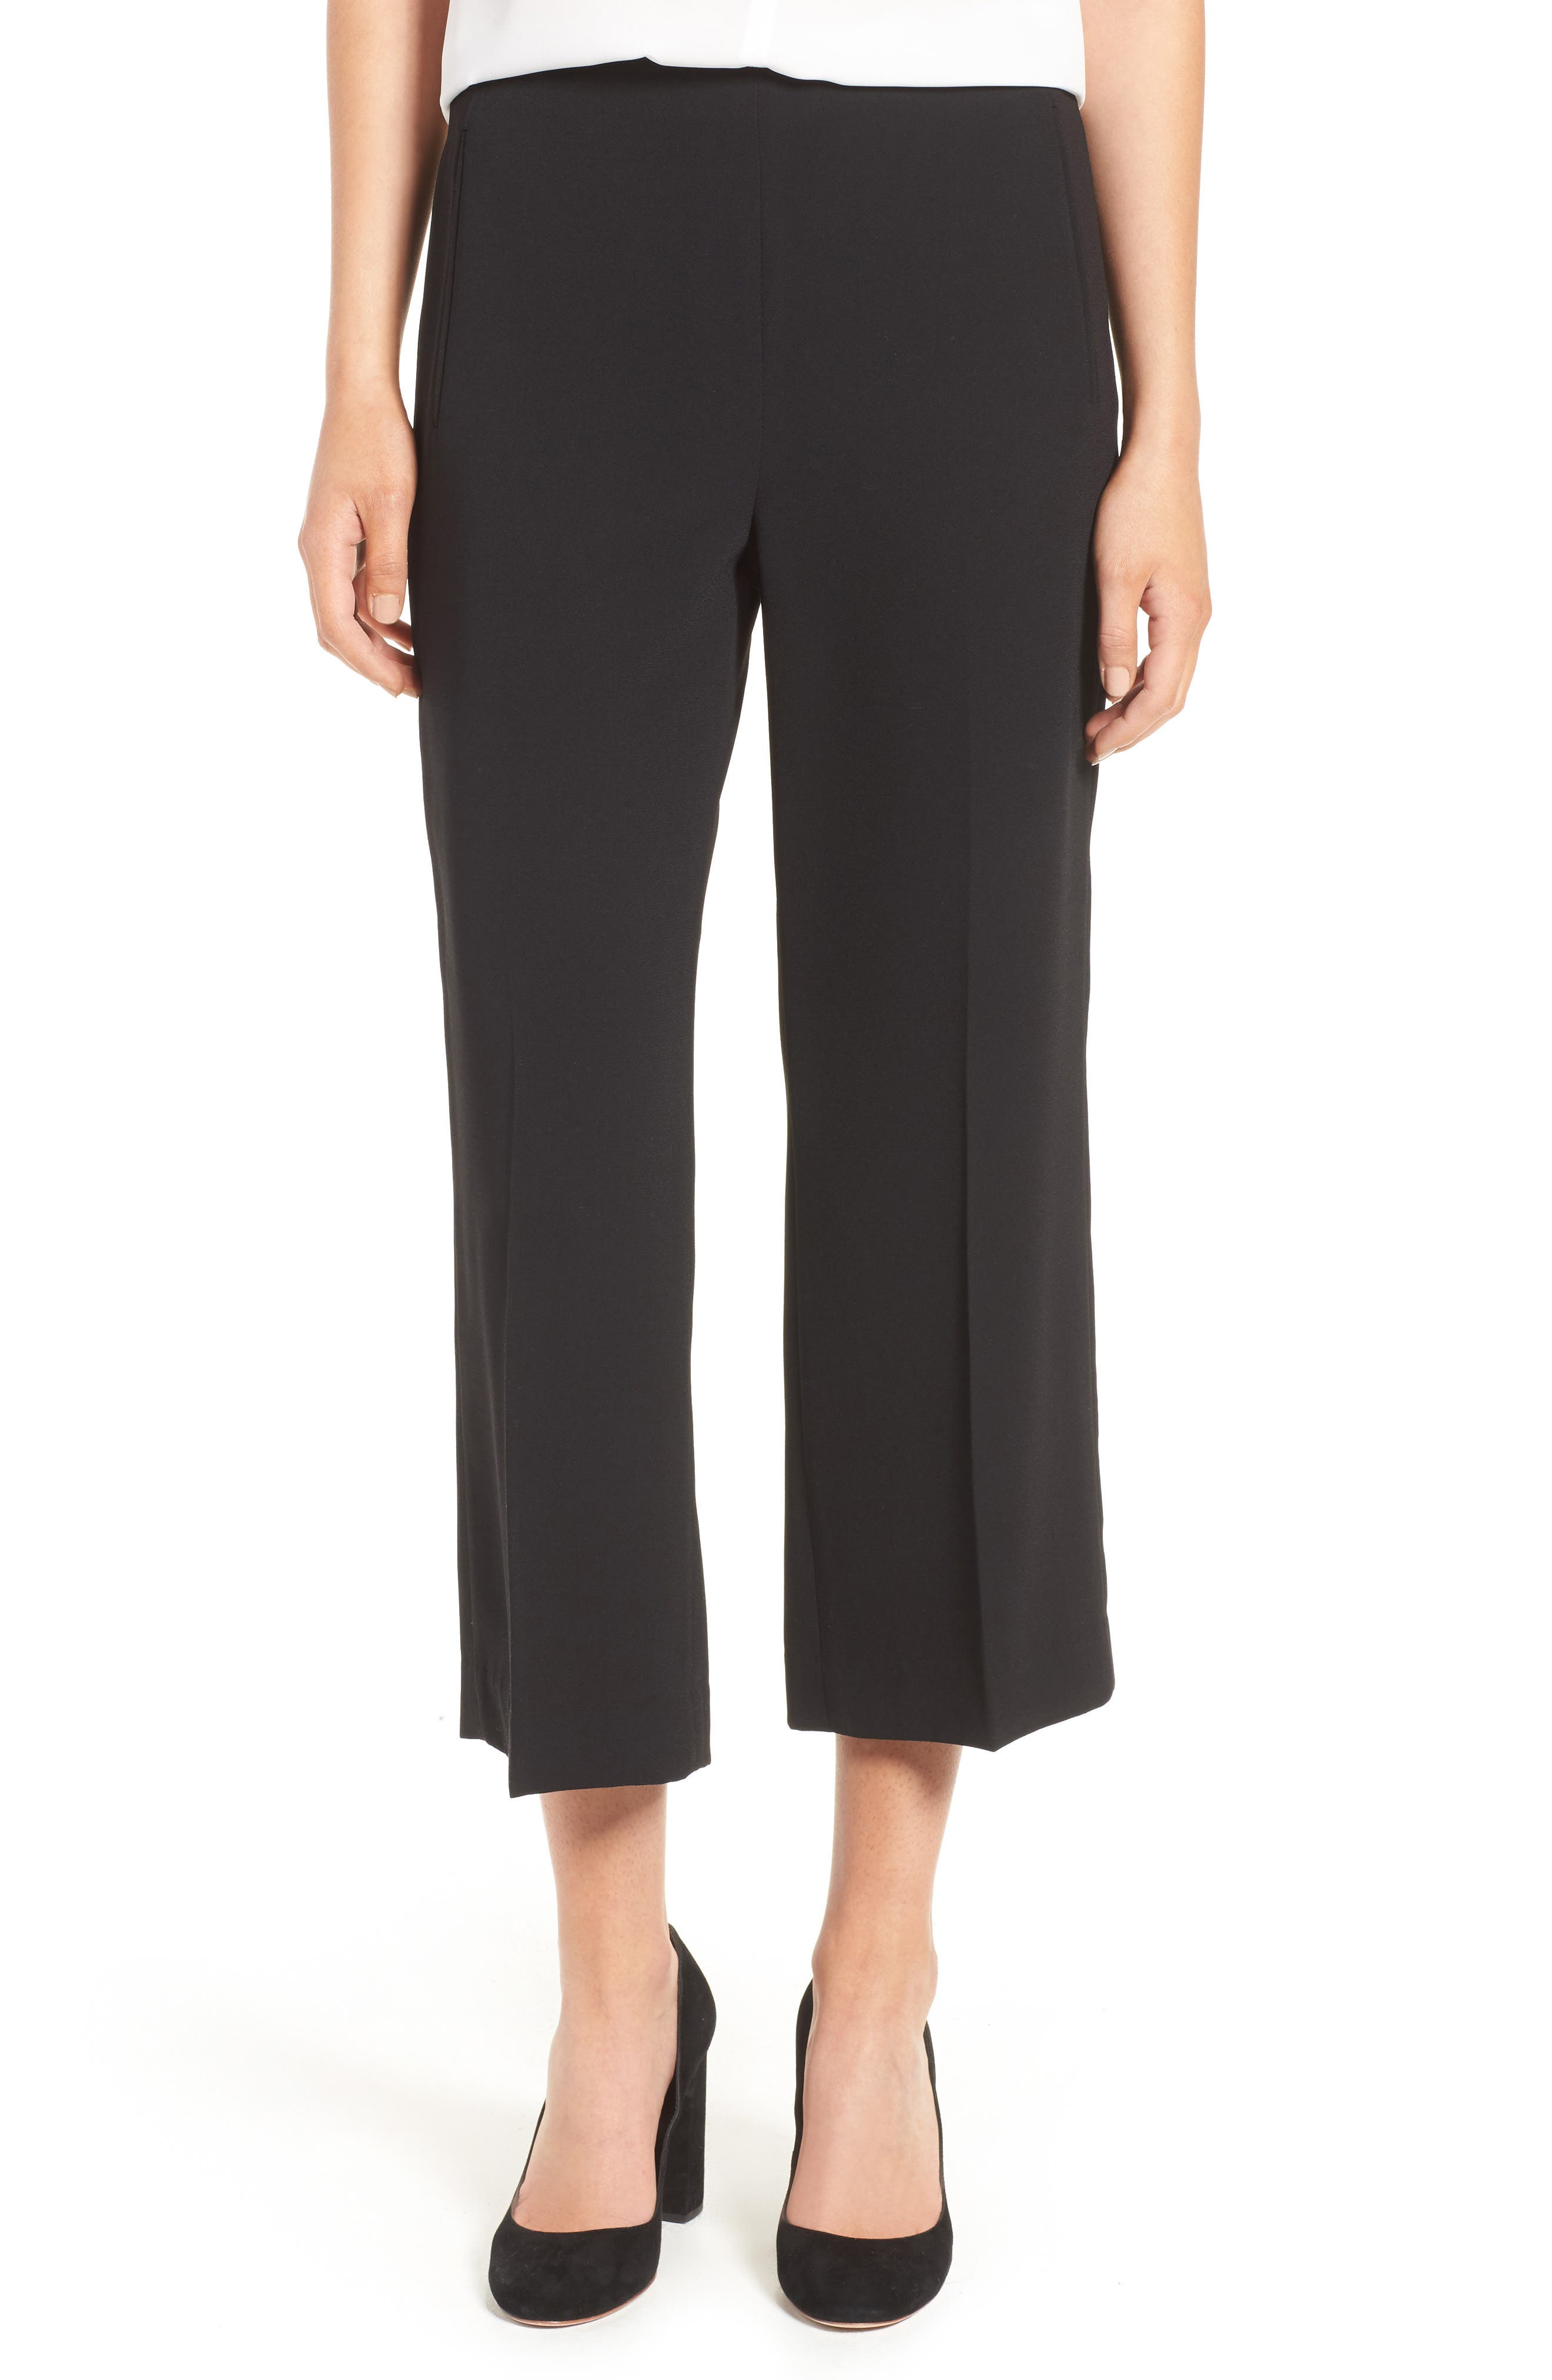 Moss Crepe Crop Trousers,                             Main thumbnail 1, color,                             001